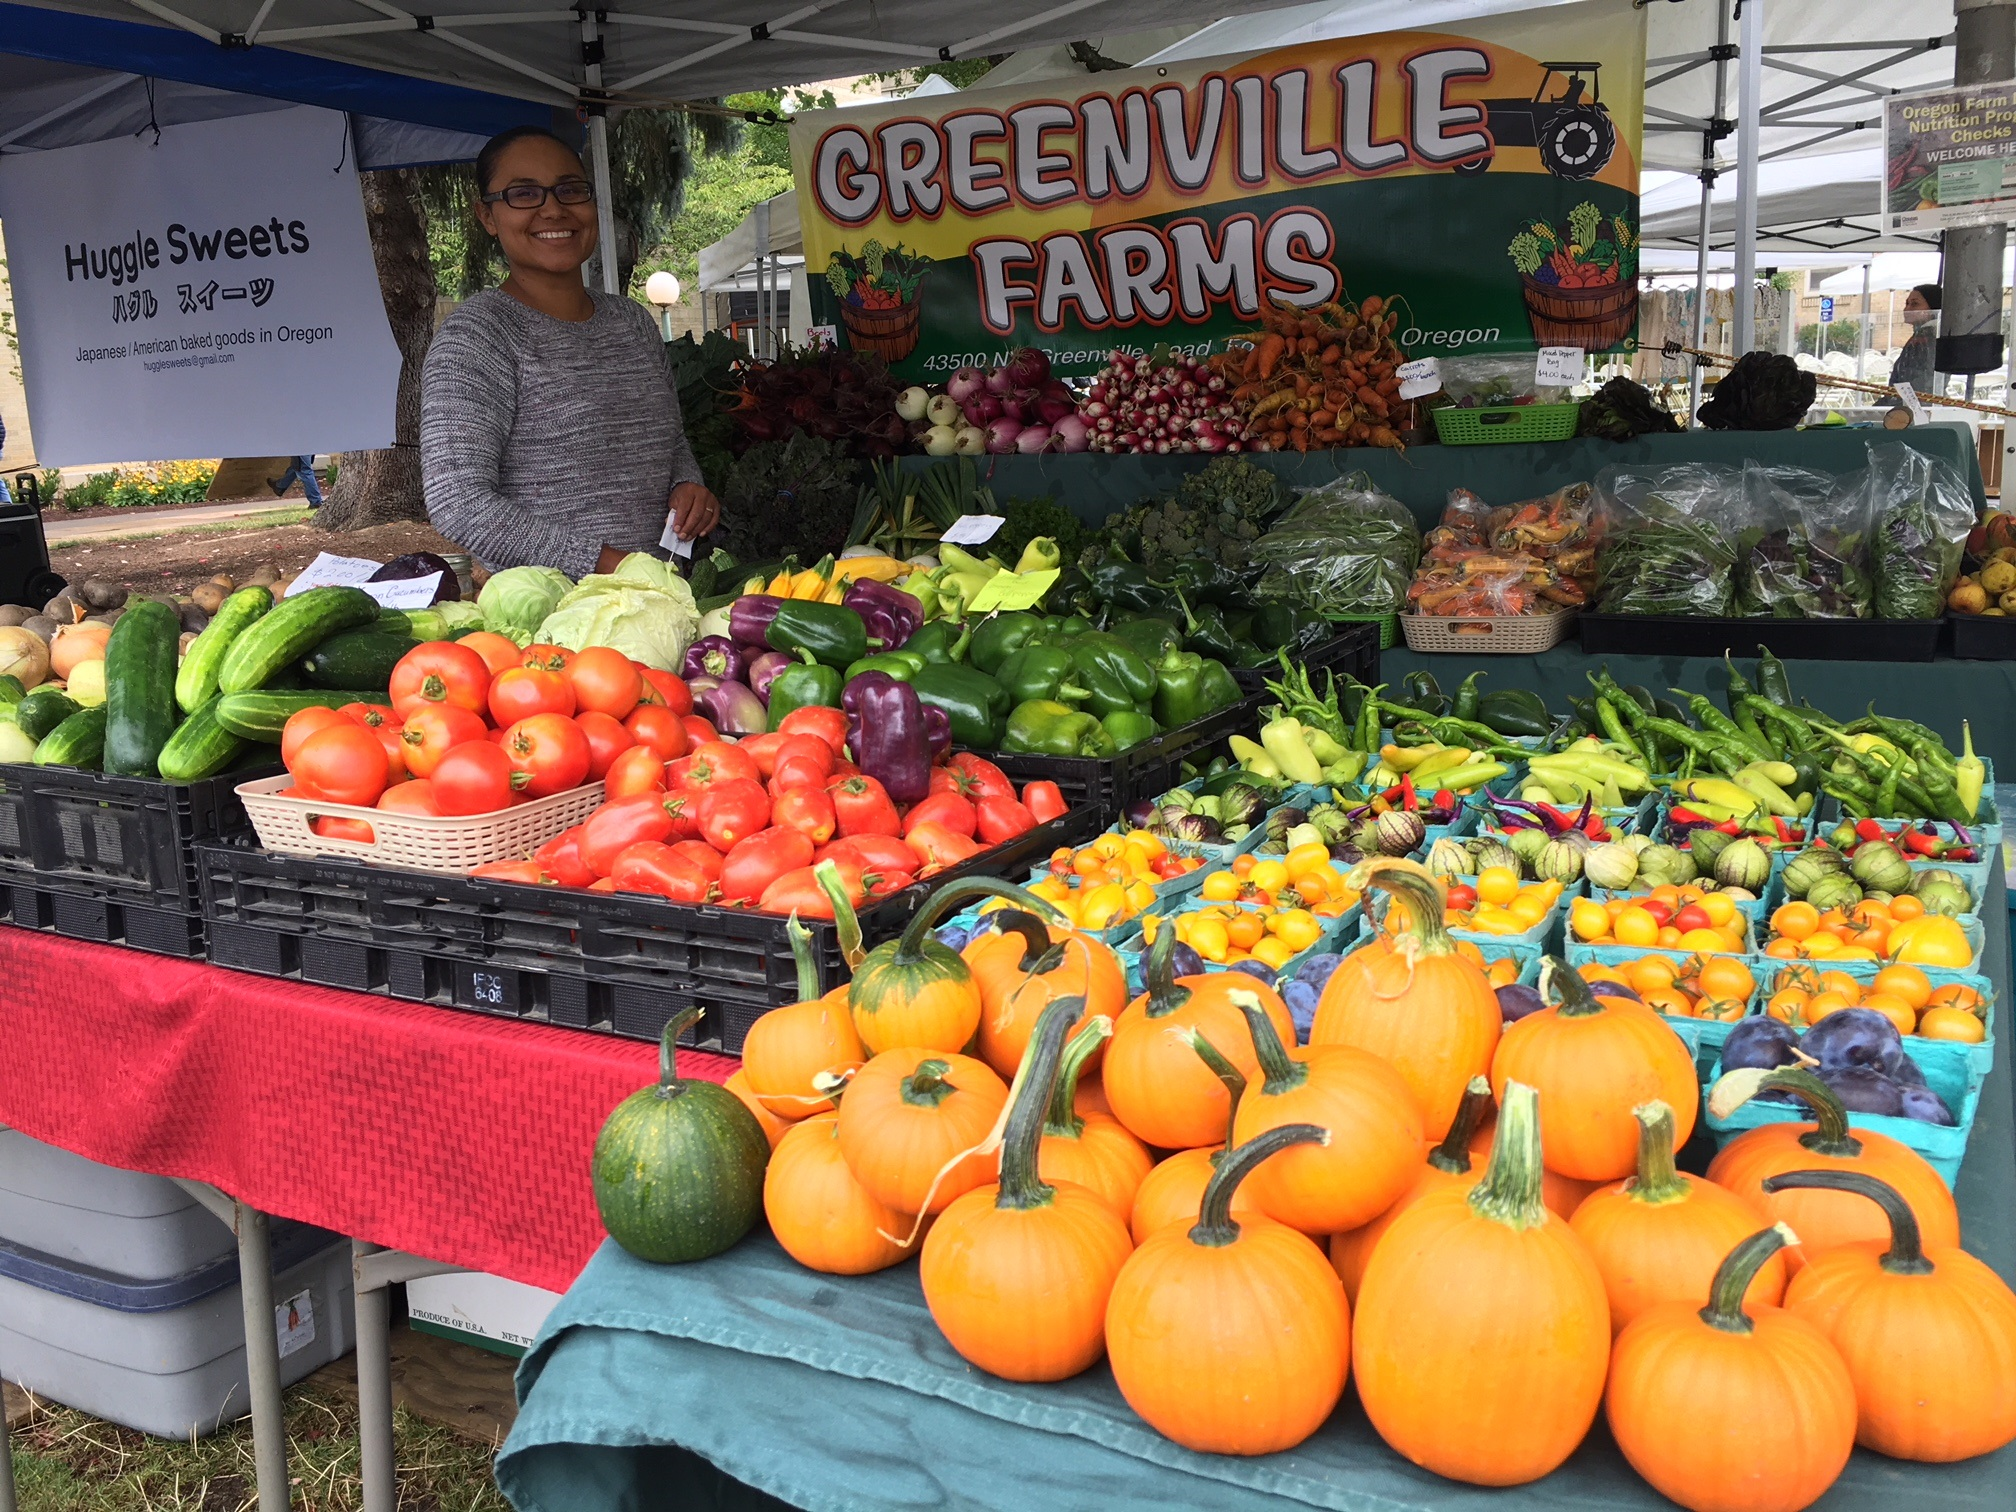 Greenville farms produce, orange squash and tomatoes featured here